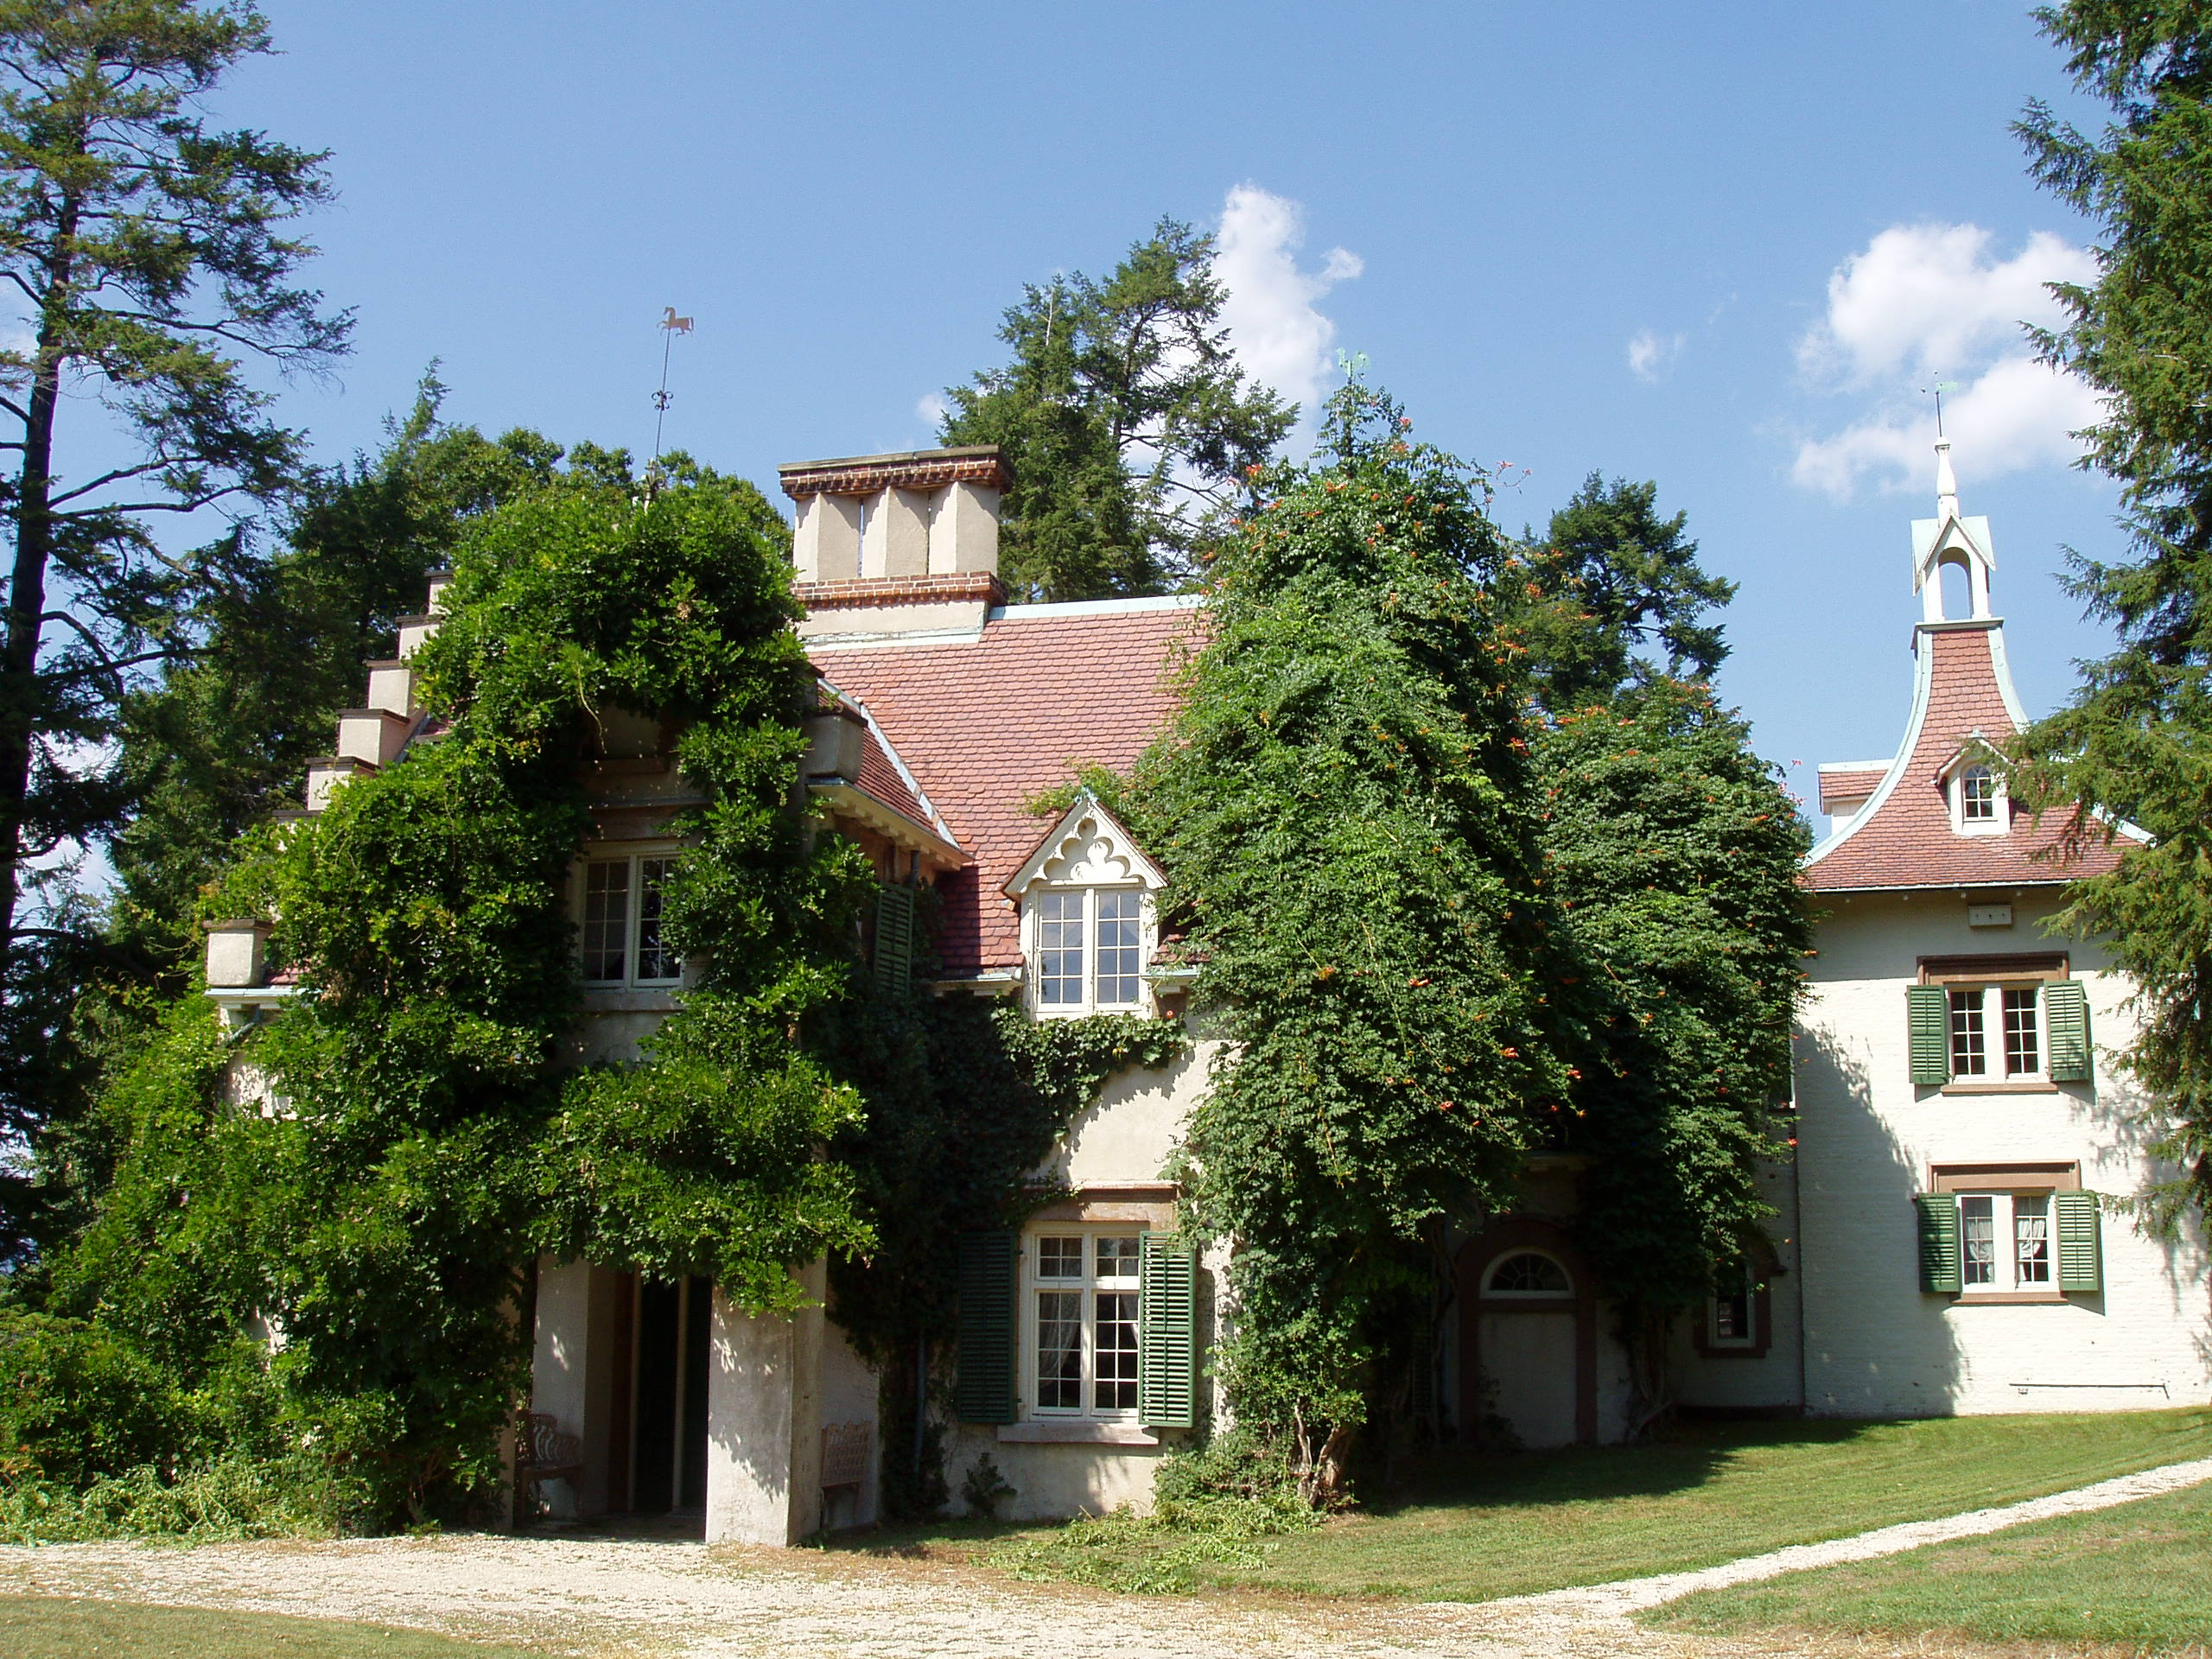 Irving's home in Tarrytown, NY